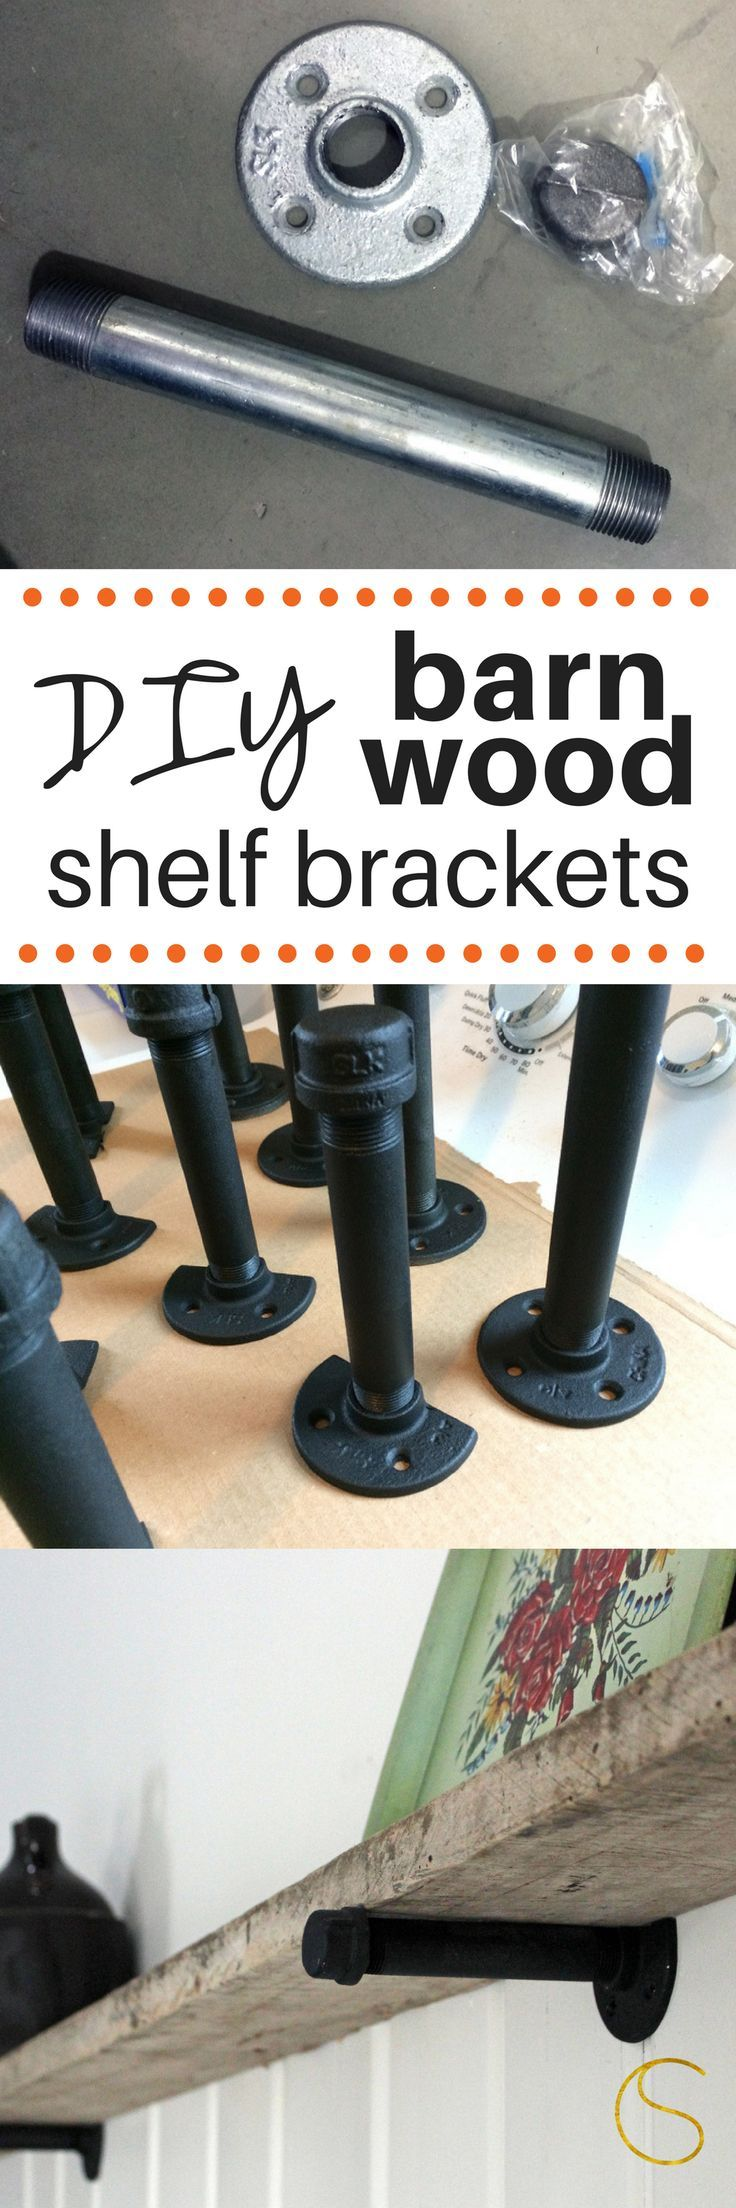 DIY barn wood shelf brackets!  These are easy to make and made with plumbing supplies.  Only three pieces and a bit of spray paint and you're on your way to your own custom barn wood shelf!